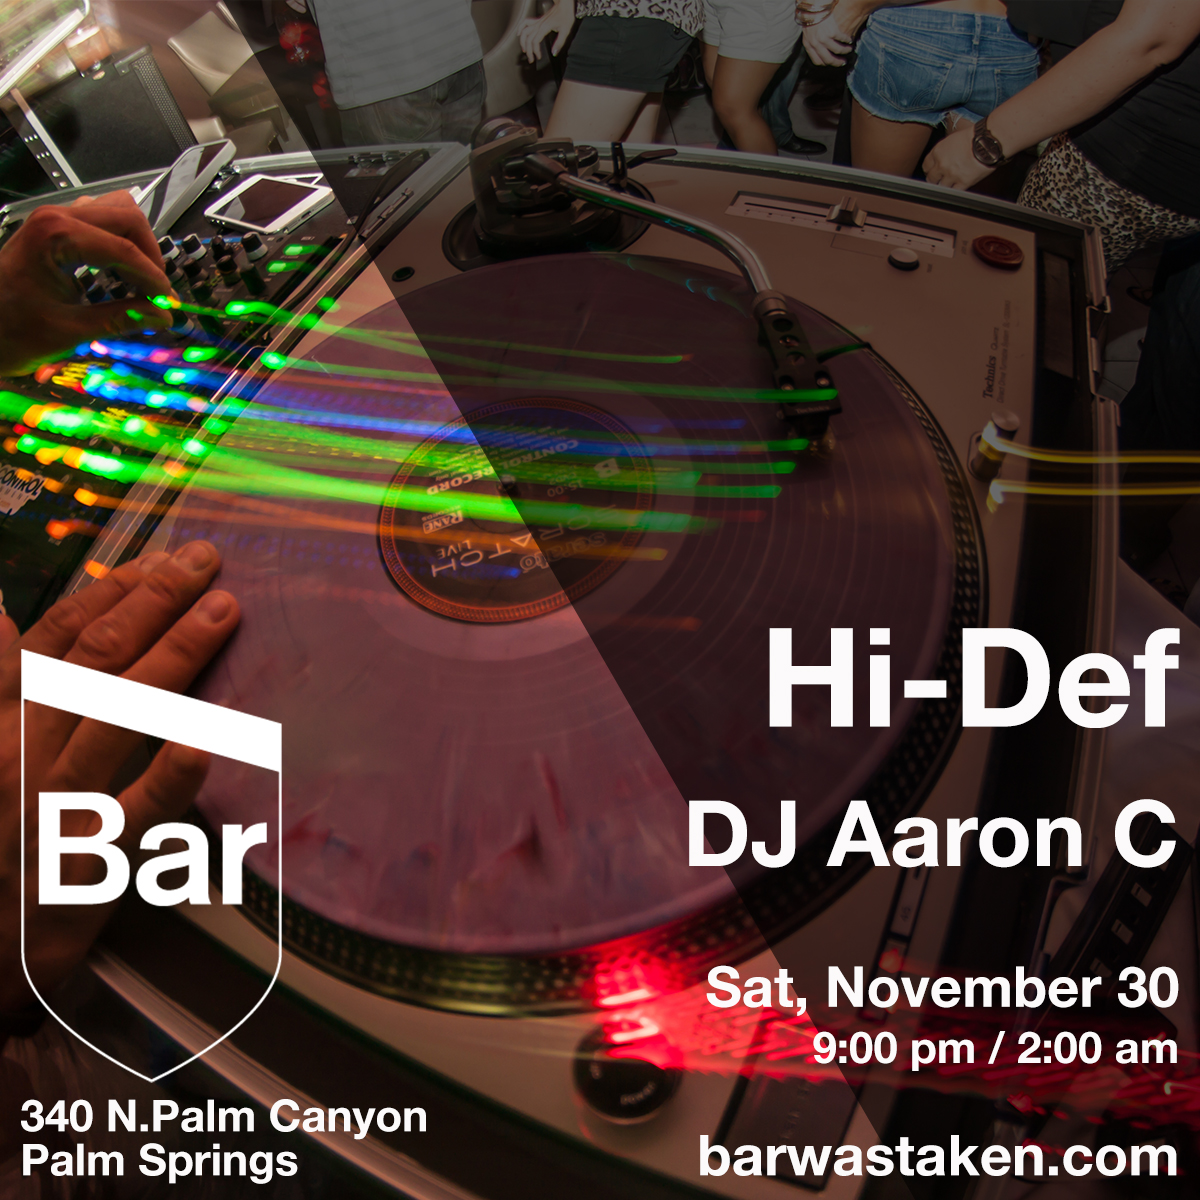 http://djaaronc.com/back-downtown-at-the-newly-muraled-up-bar/